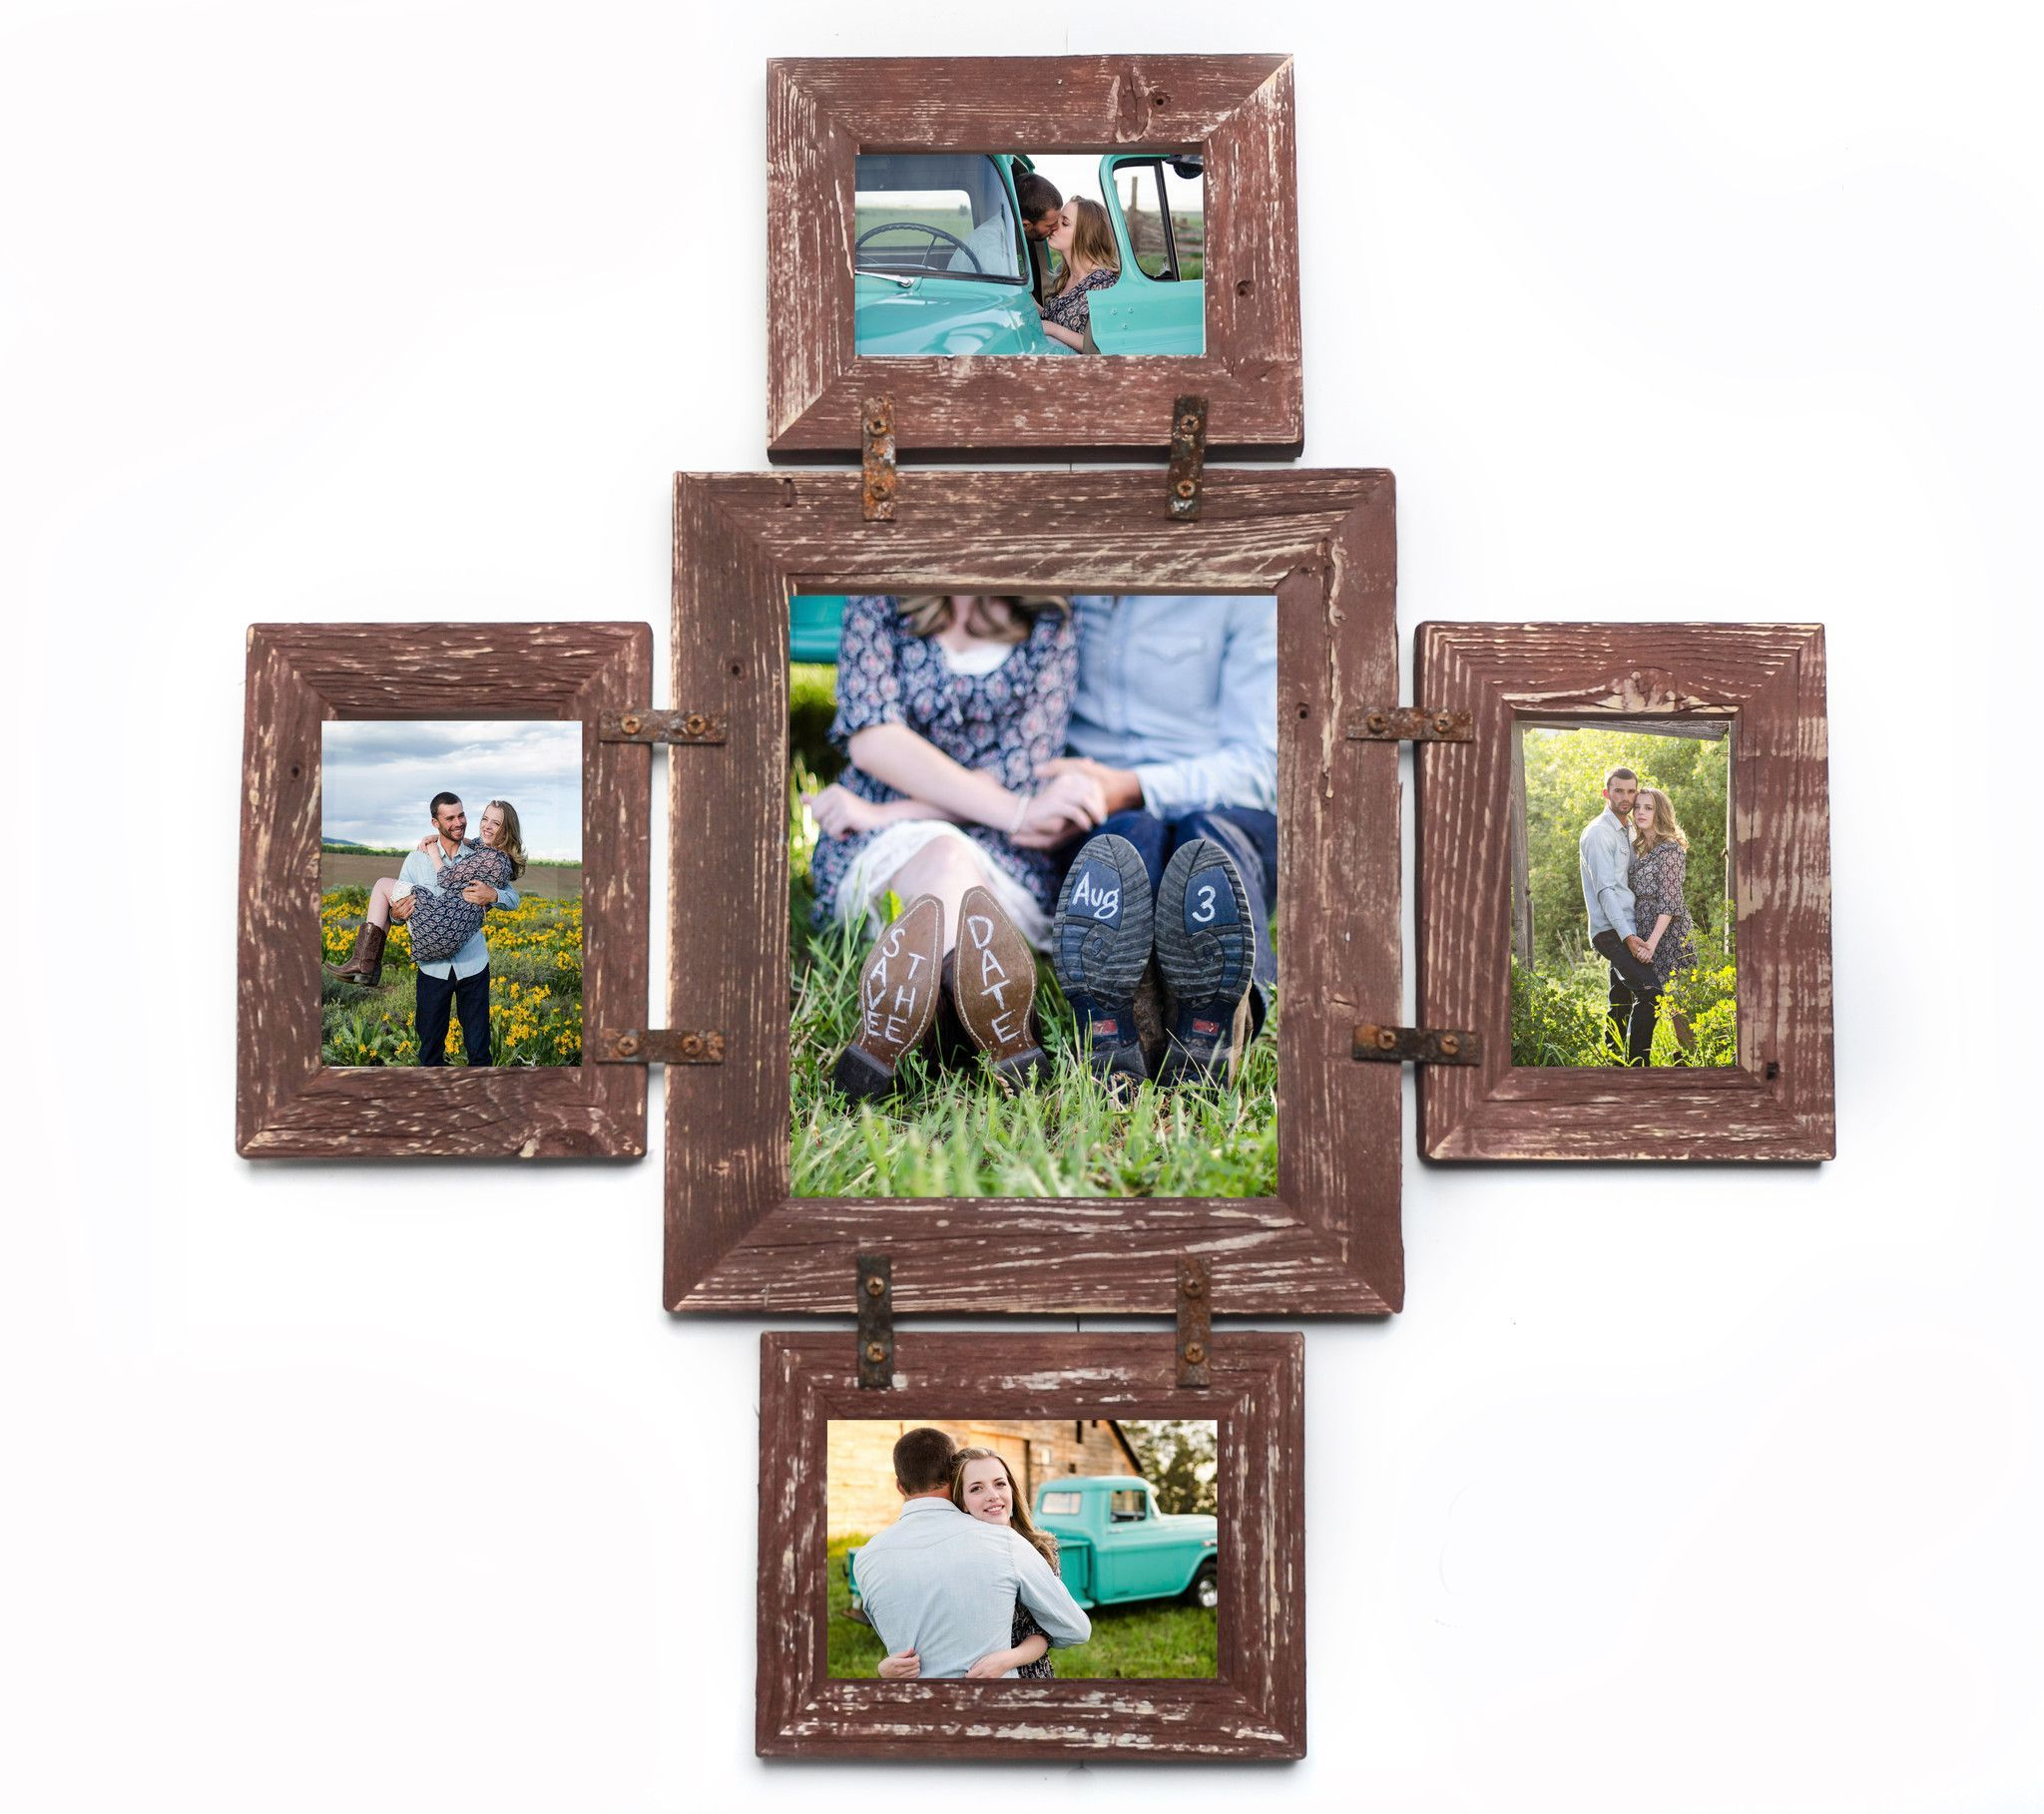 Rustic Photo Collage Frame 1 8x10 And 4 4x6 Multi Opening Unique Frame With Rusty Bracket Hardware Collage Frames Framed Photo Collage Wood Picture Frames